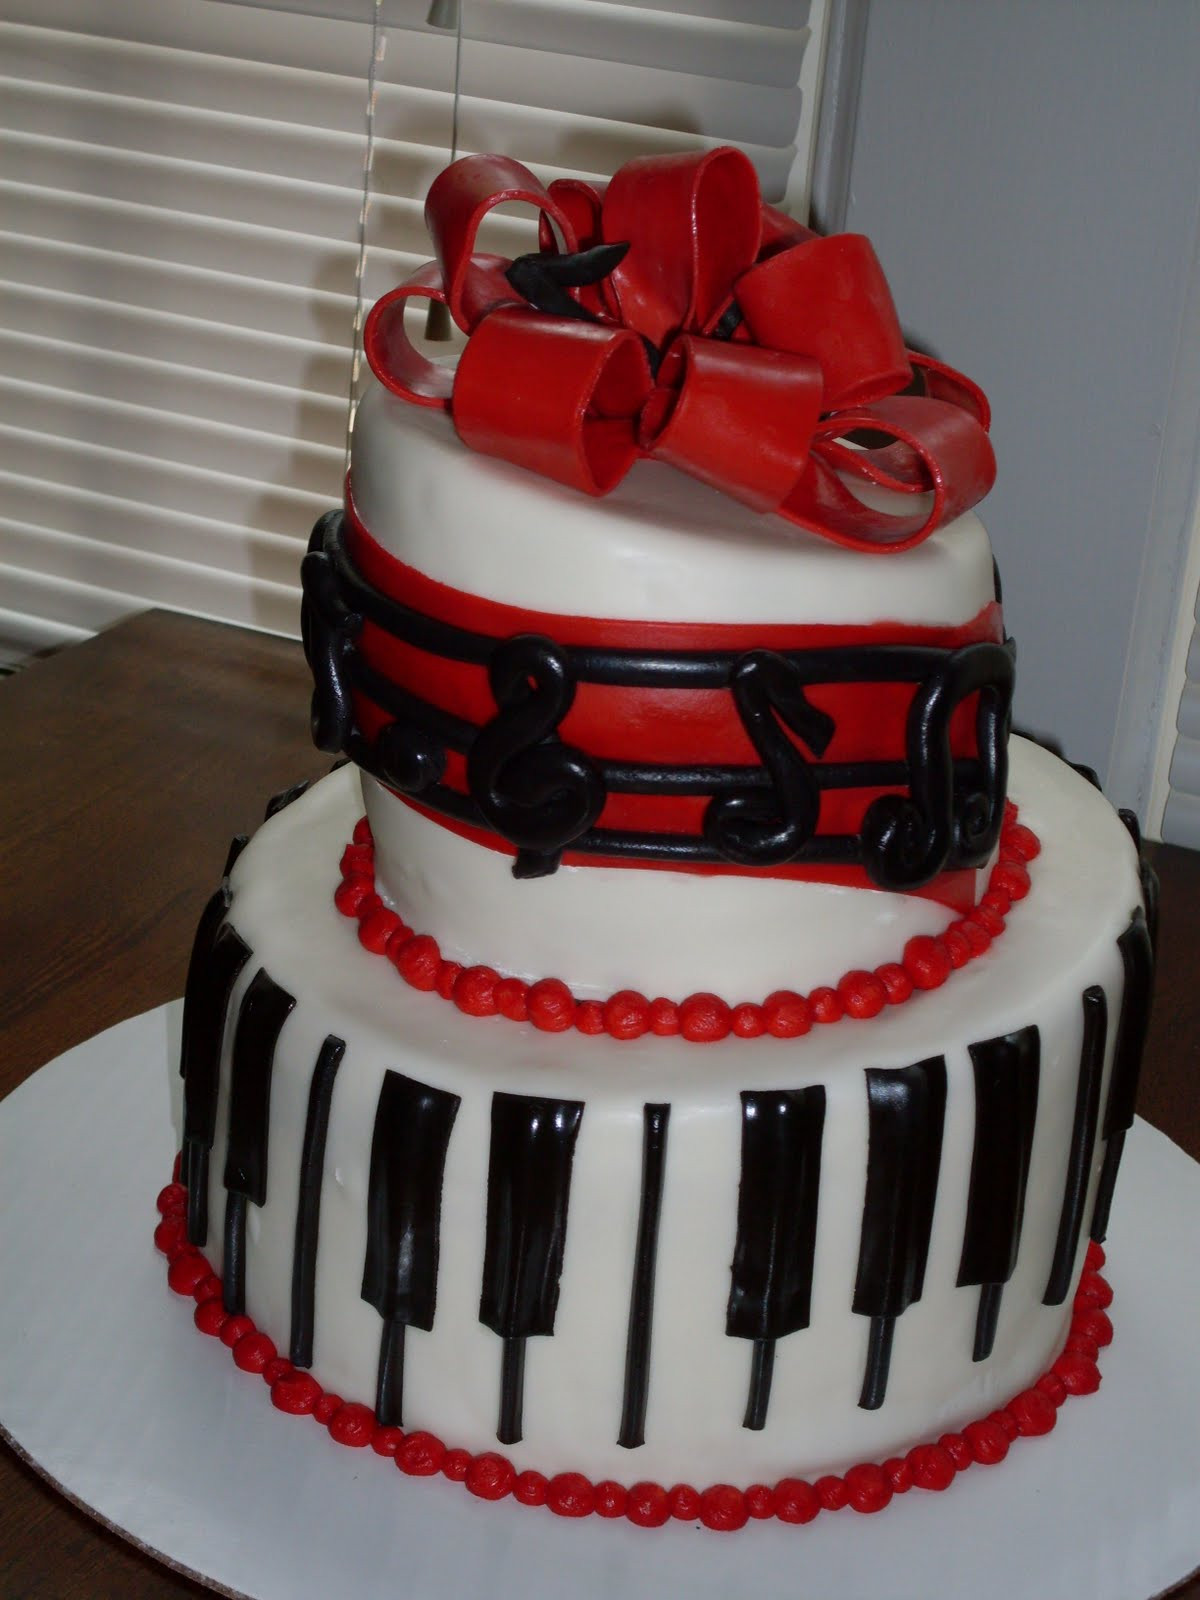 Best ideas about Happy Birthday Chris Cake . Save or Pin Kaci s Cake Delight Happy Birthday Chris Now.